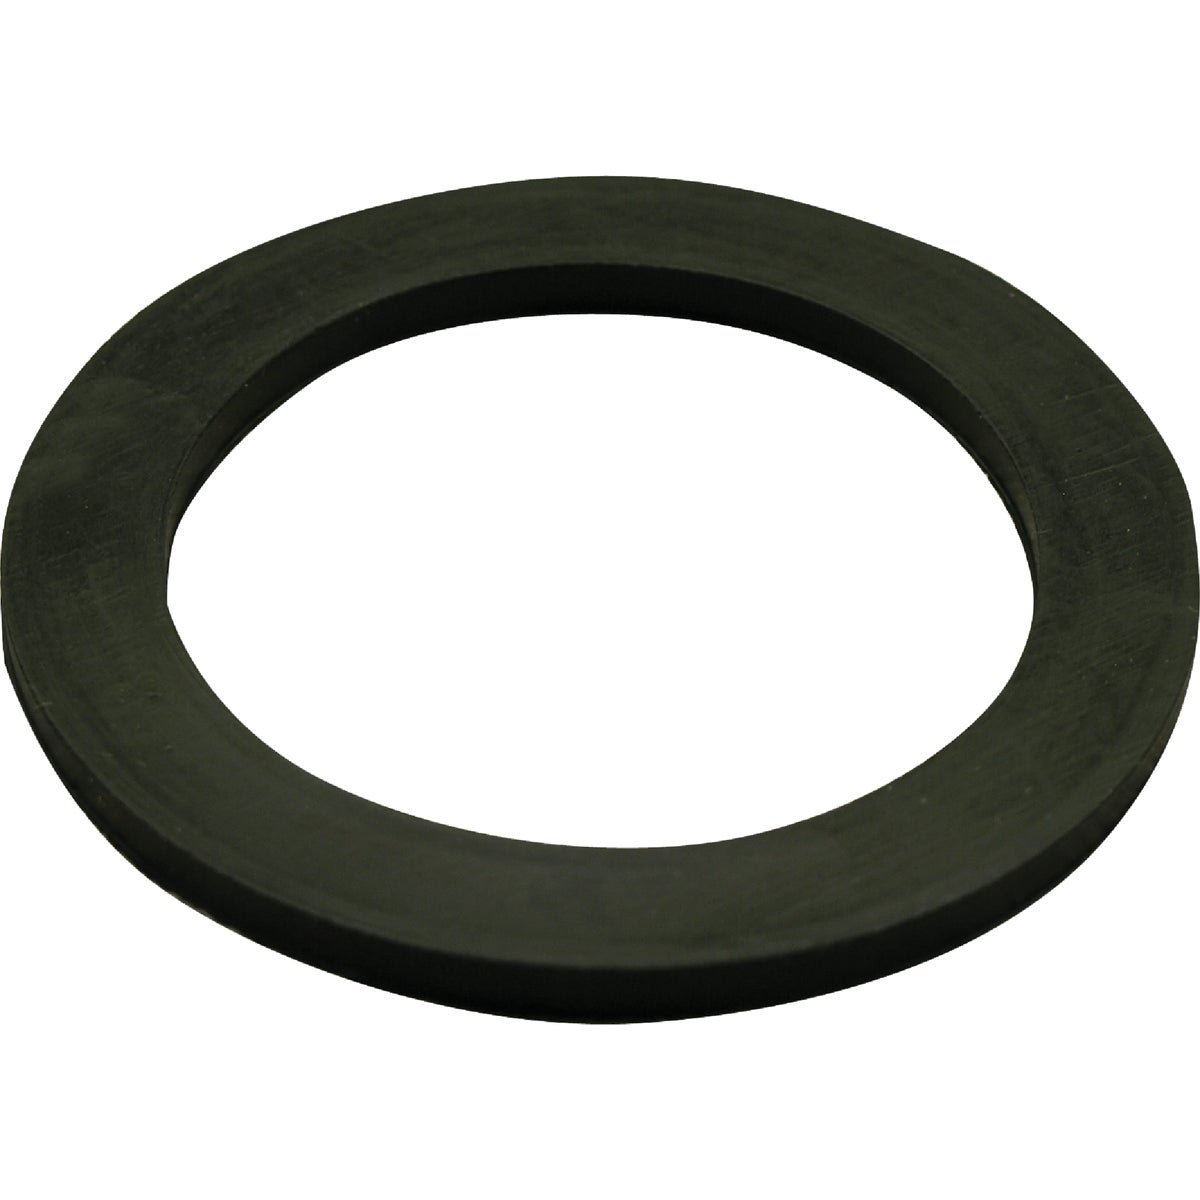 "2"" WASHER - 43081292 by Apache Hose Belting"